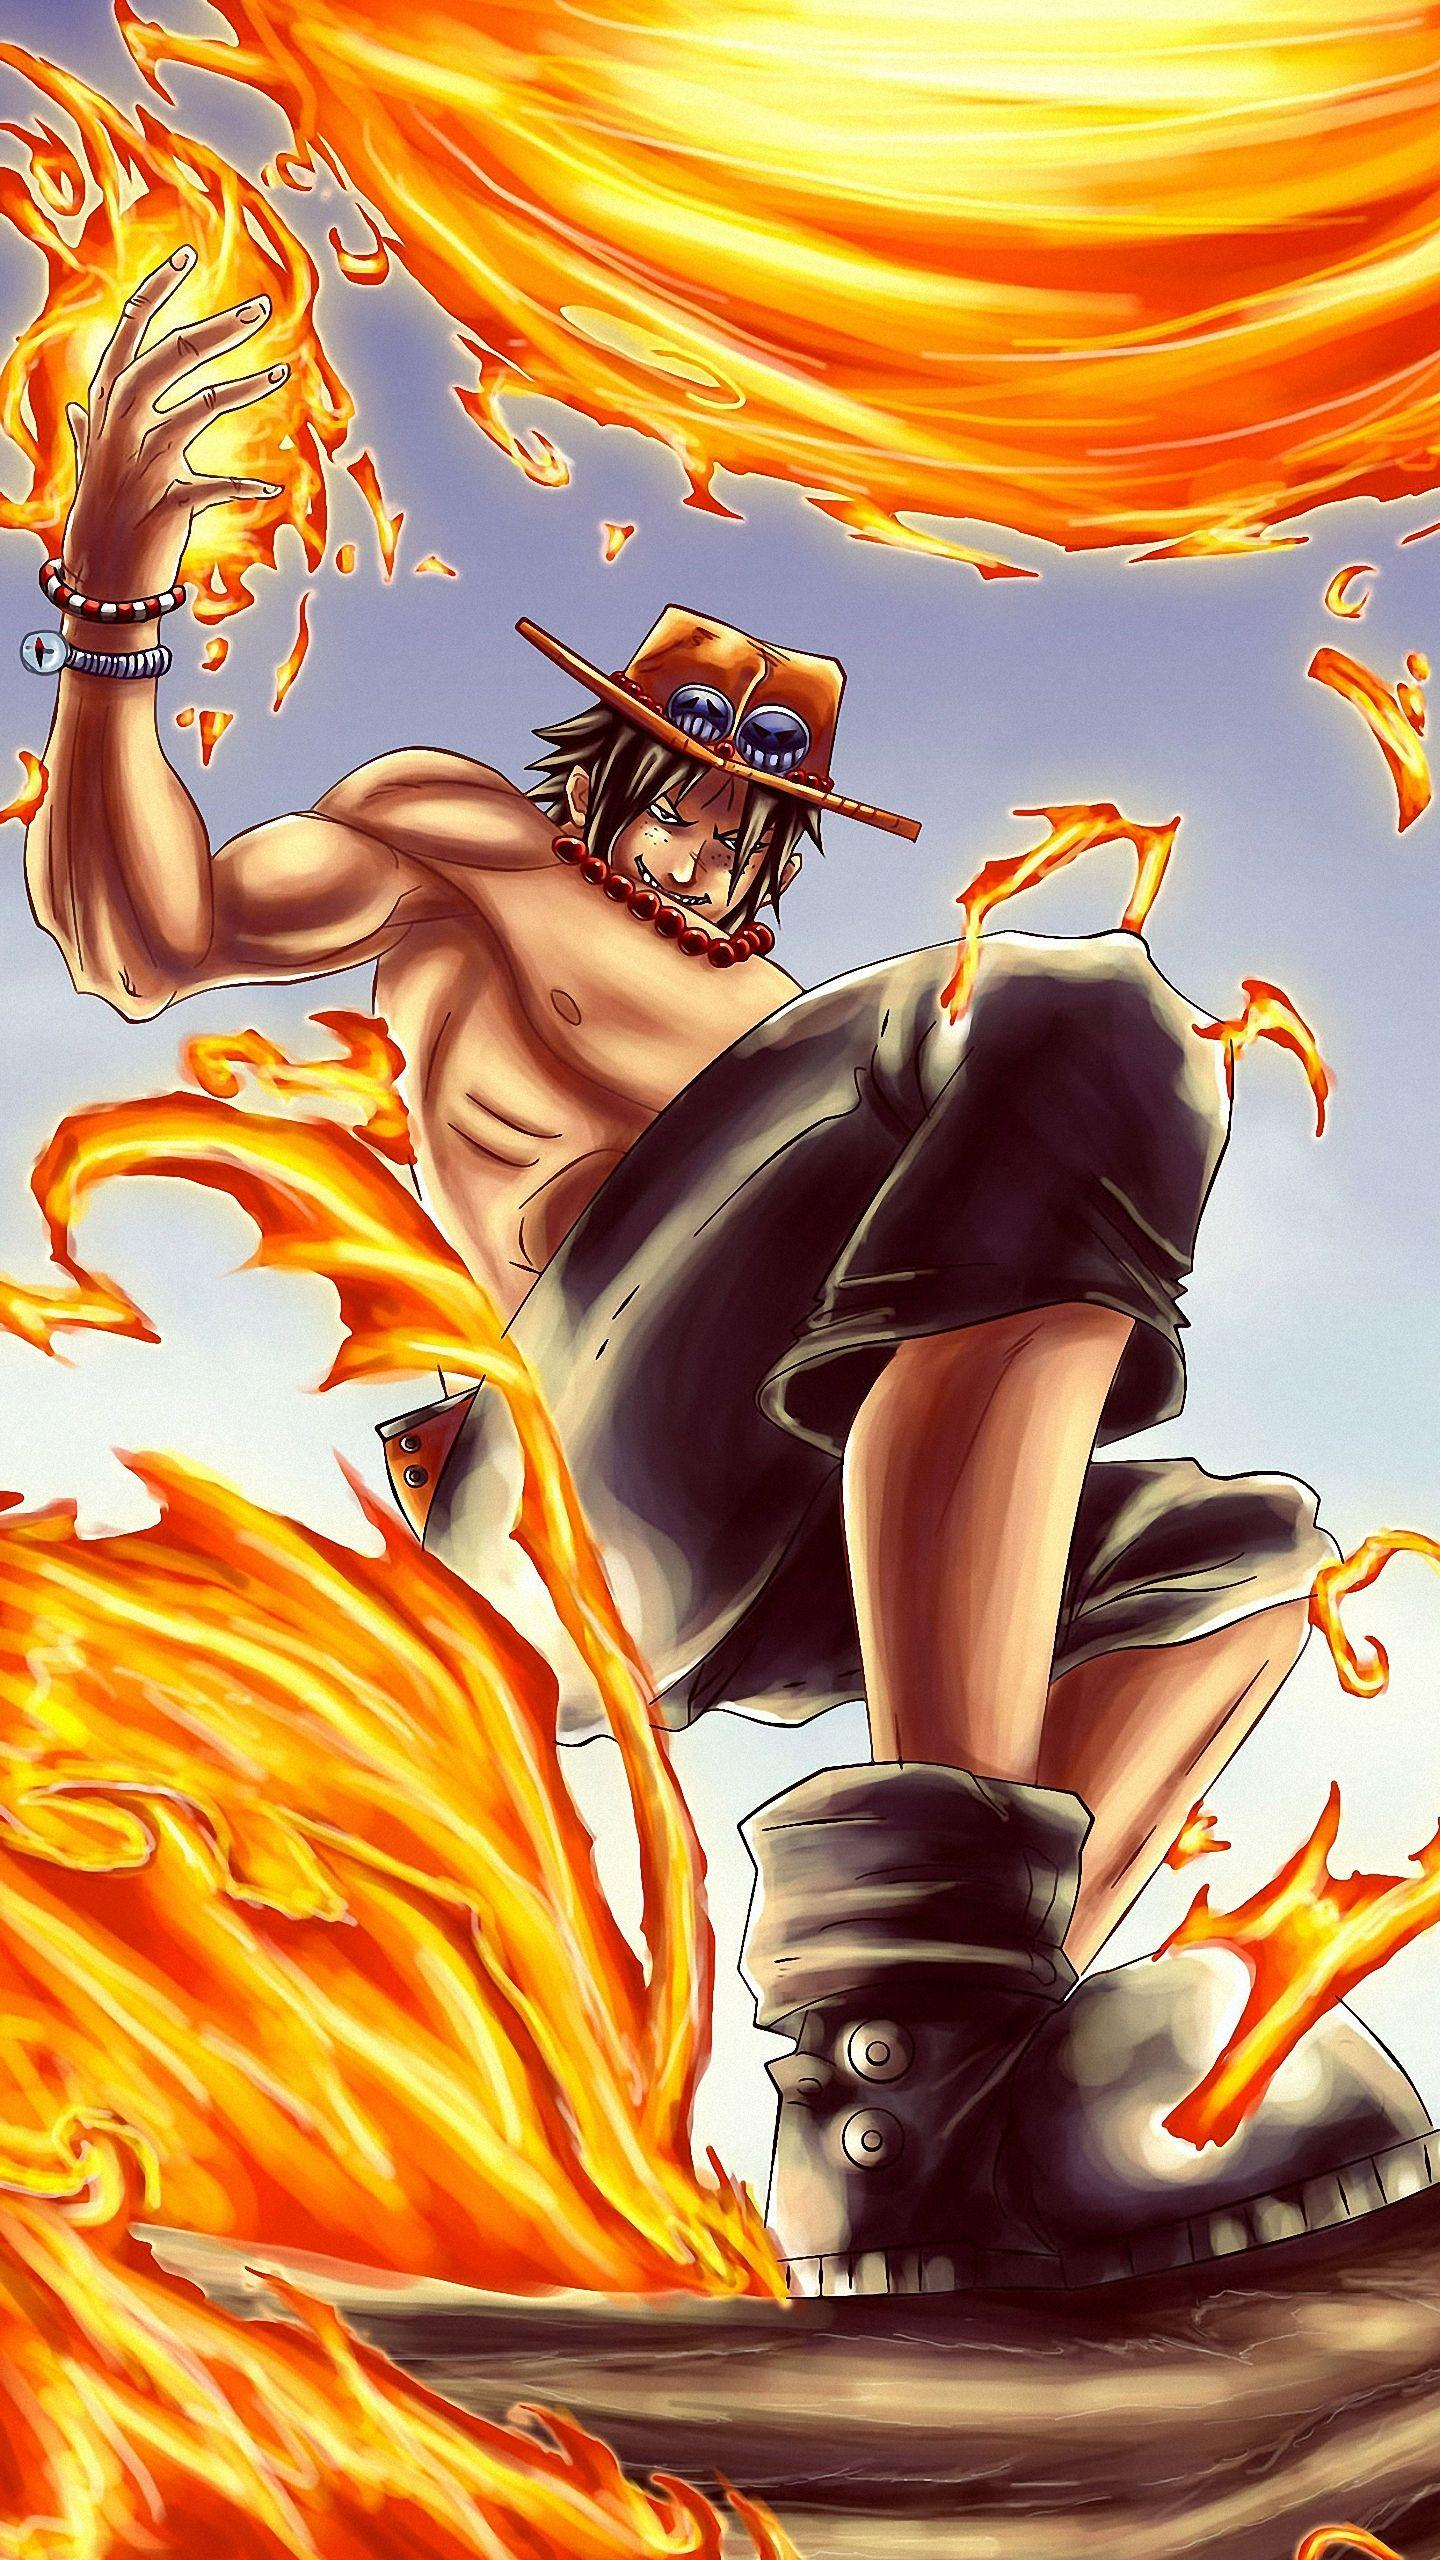 One Piece Hd Wallpaper Phone Simplexpict1st Org